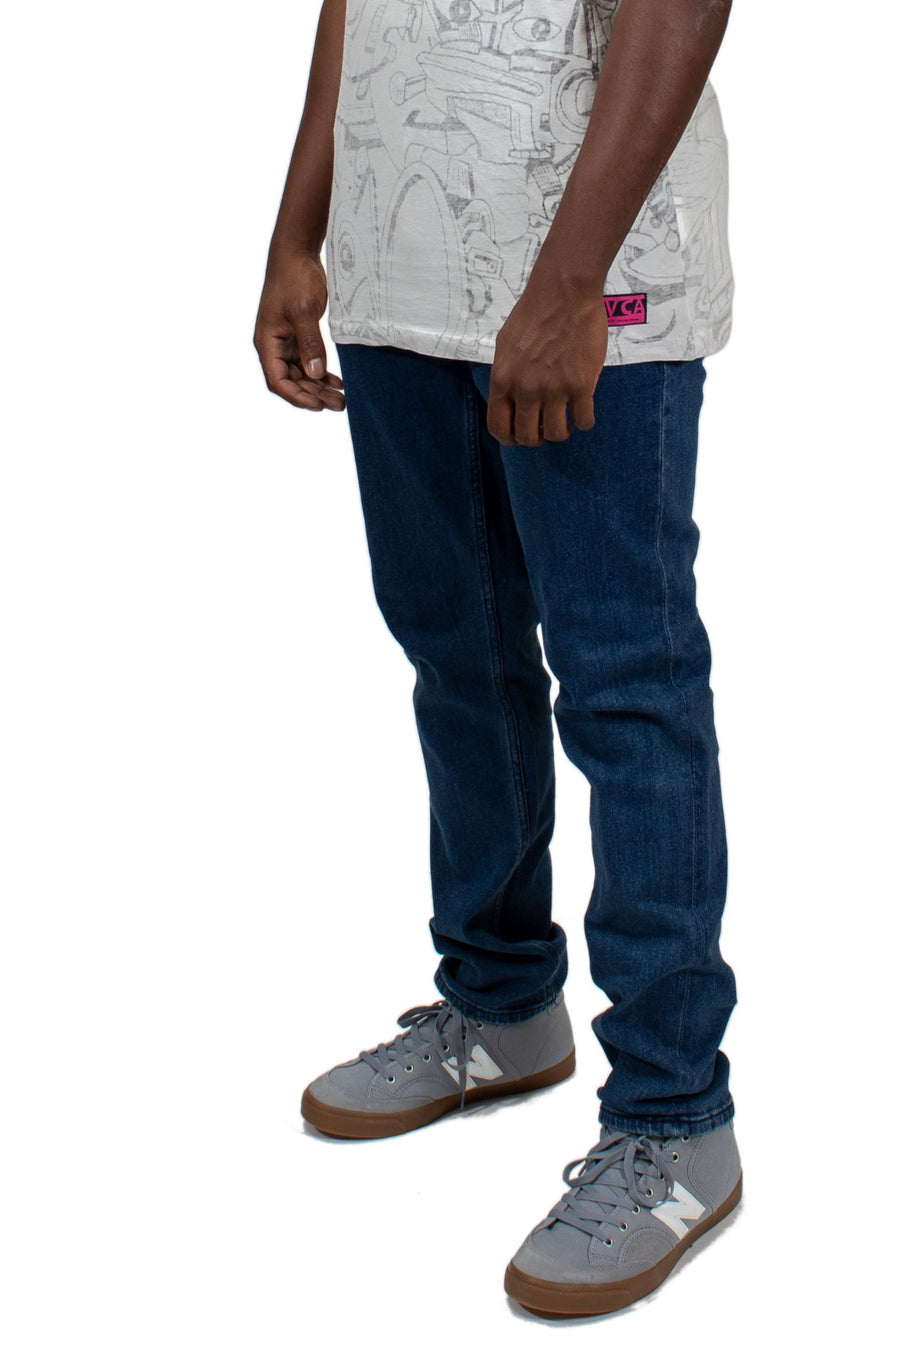 RVCA Hexed Denim Pants - Blue Indigo